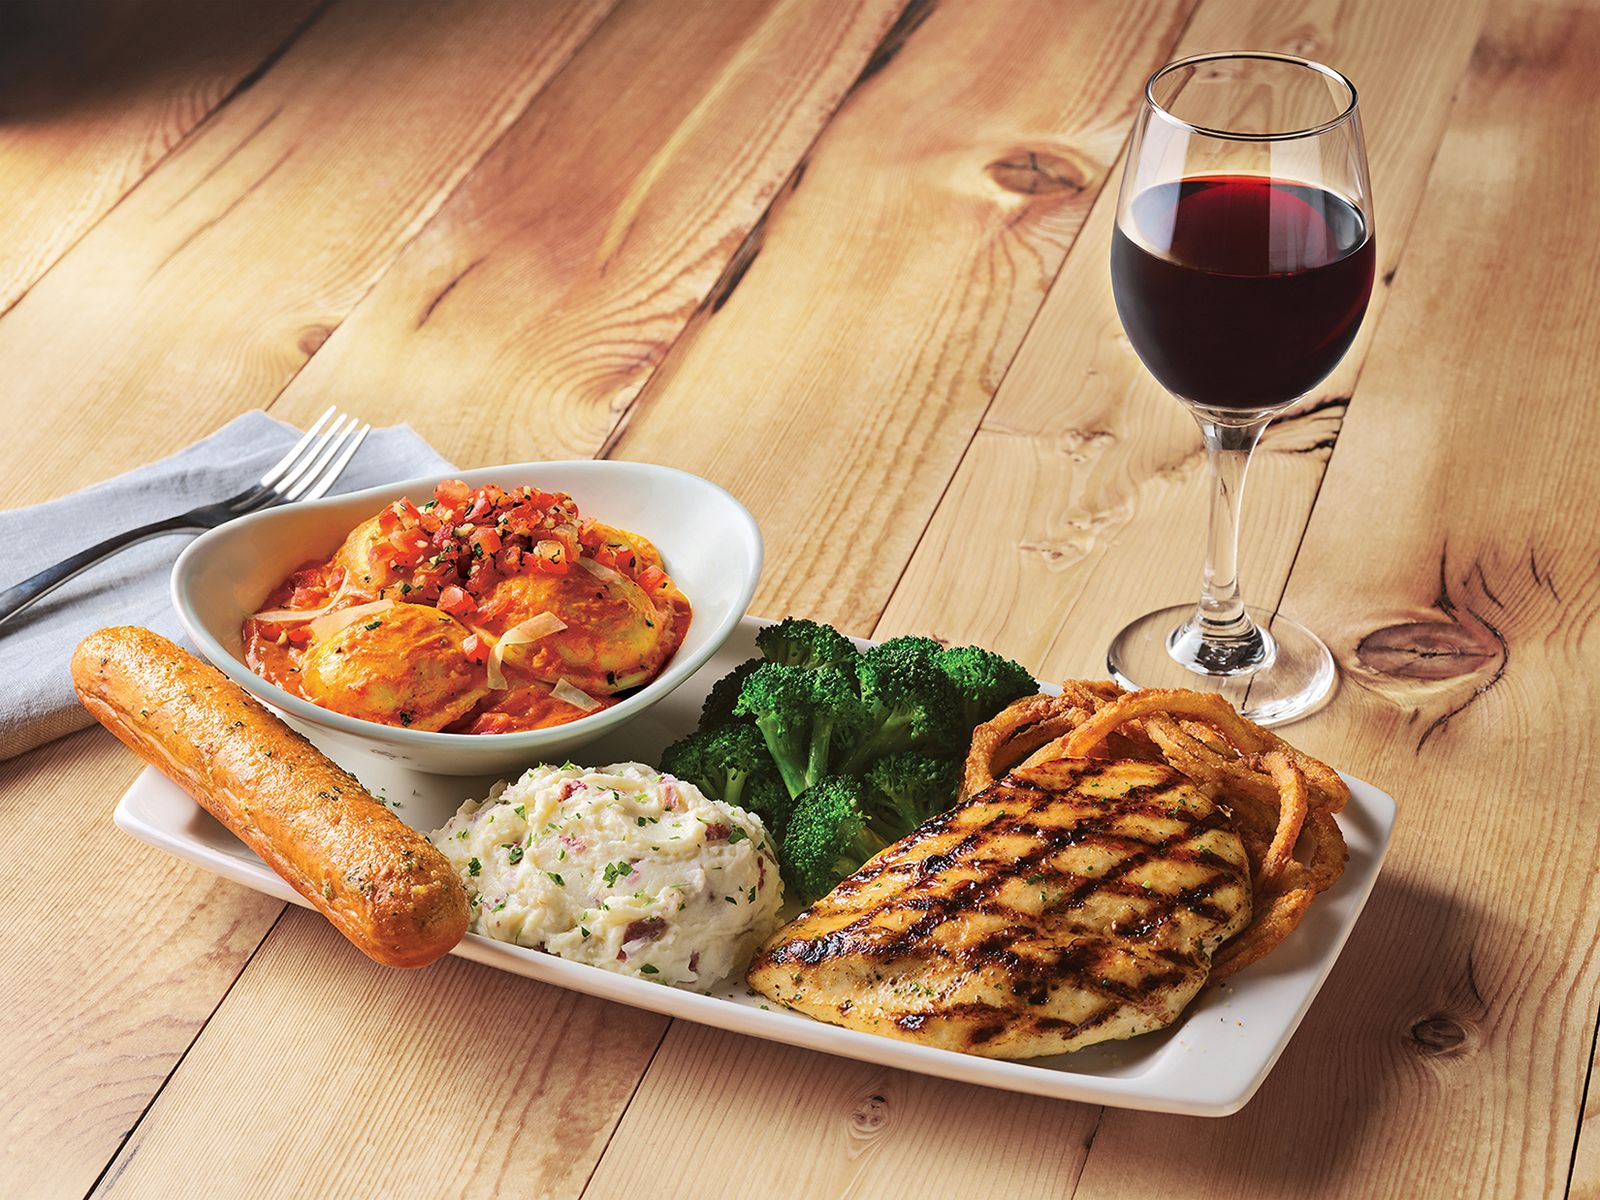 Pasta and Meat Lovers Unite - Applebee's Unveils New Pasta & Grill Combos for an Unmatched Meal